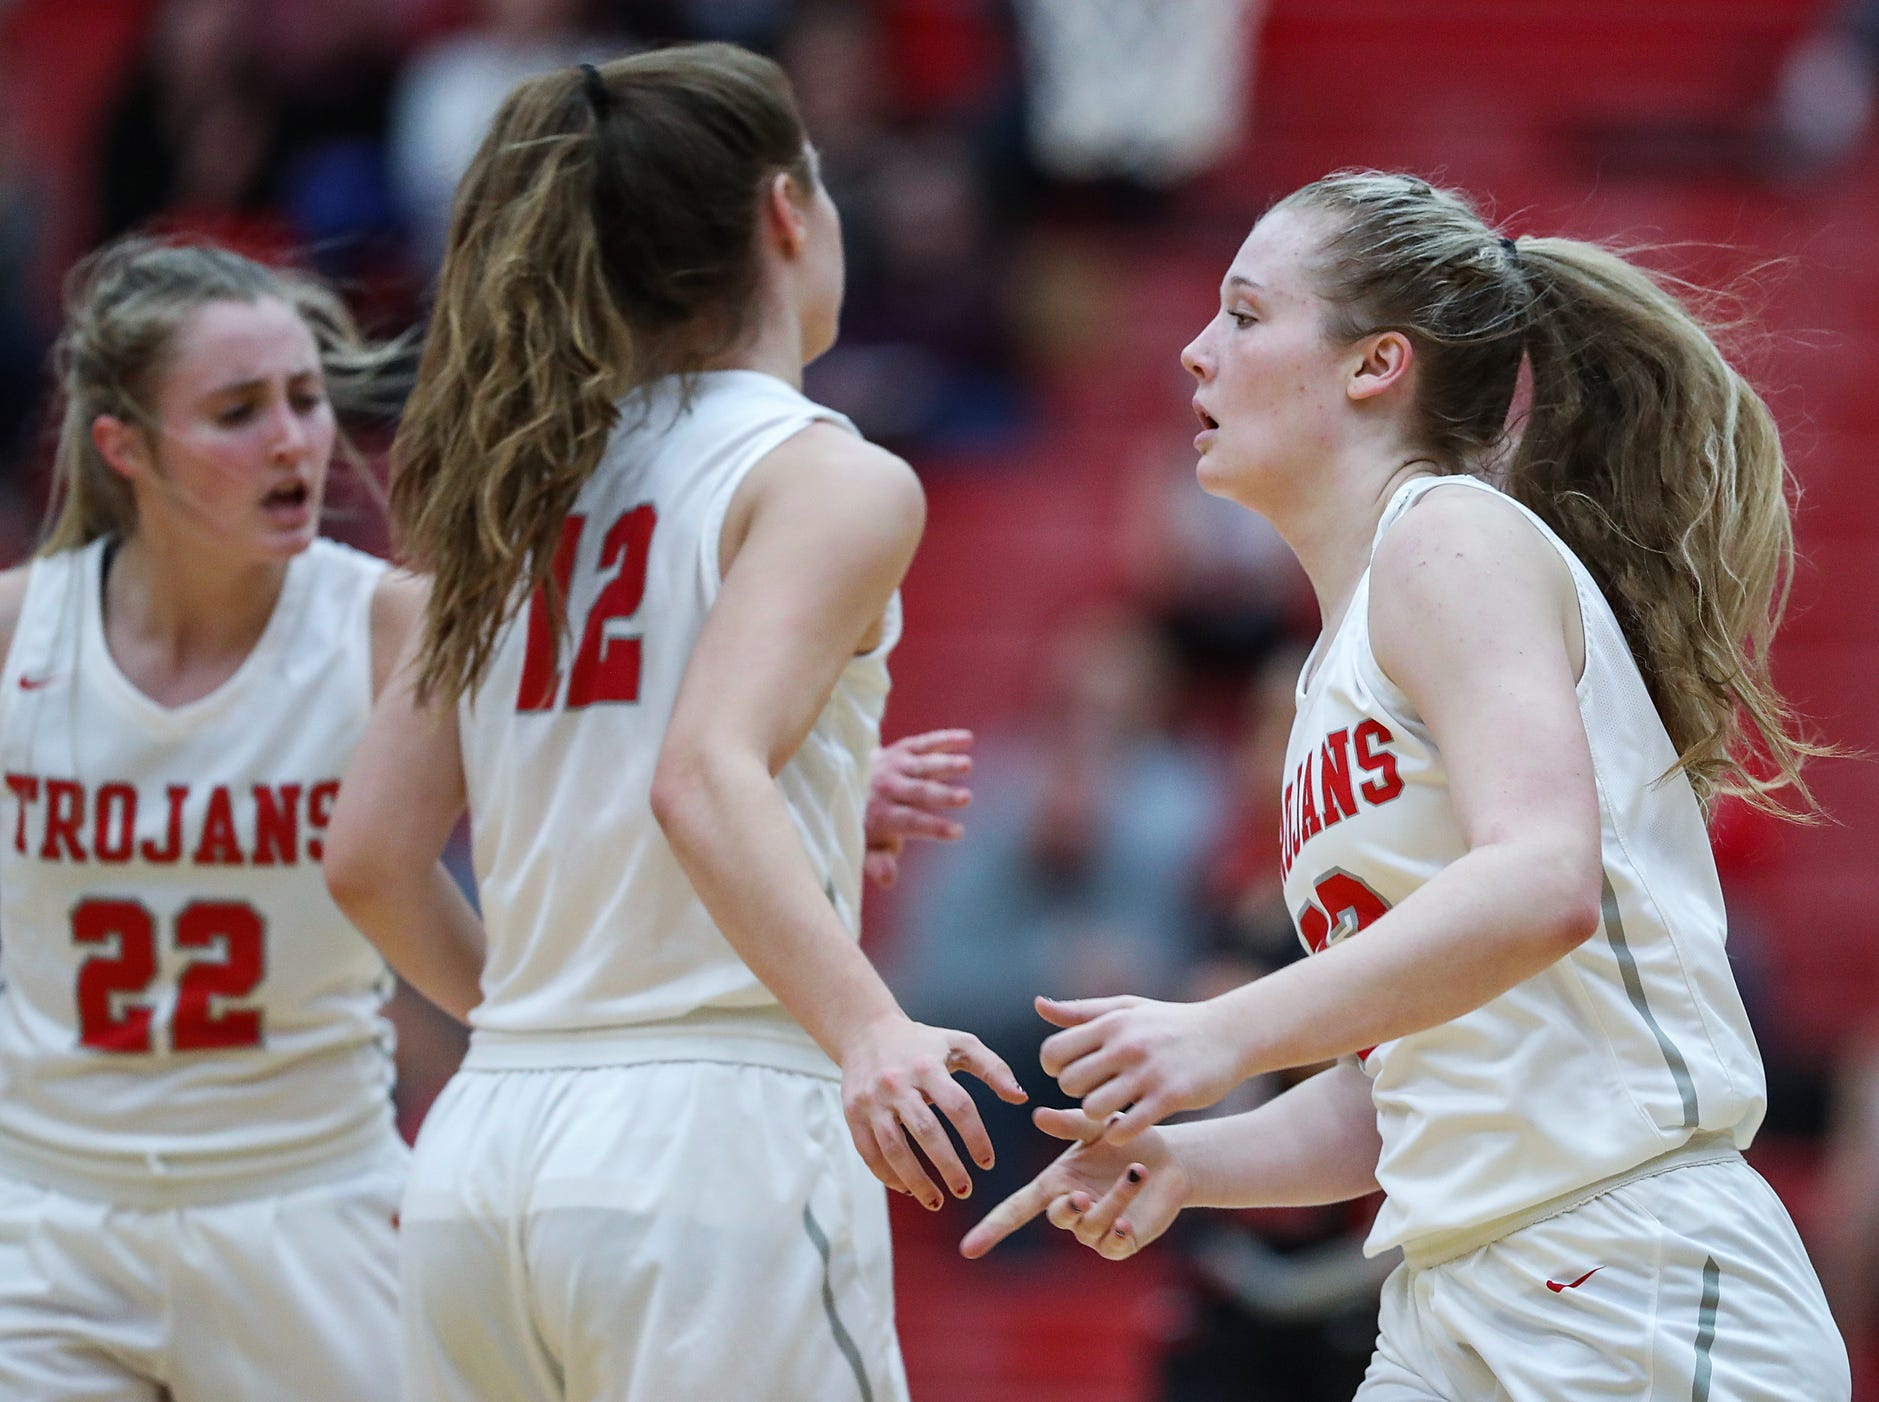 Right, Center Grove Trojans guard Mary Wilson (33) celebrates scoring a three-pointer in the second half of the game at Center Grove High School in Greenwood, Ind., Thursday, Jan. 10, 2019. Center Grove defeated North Central, 51-44.